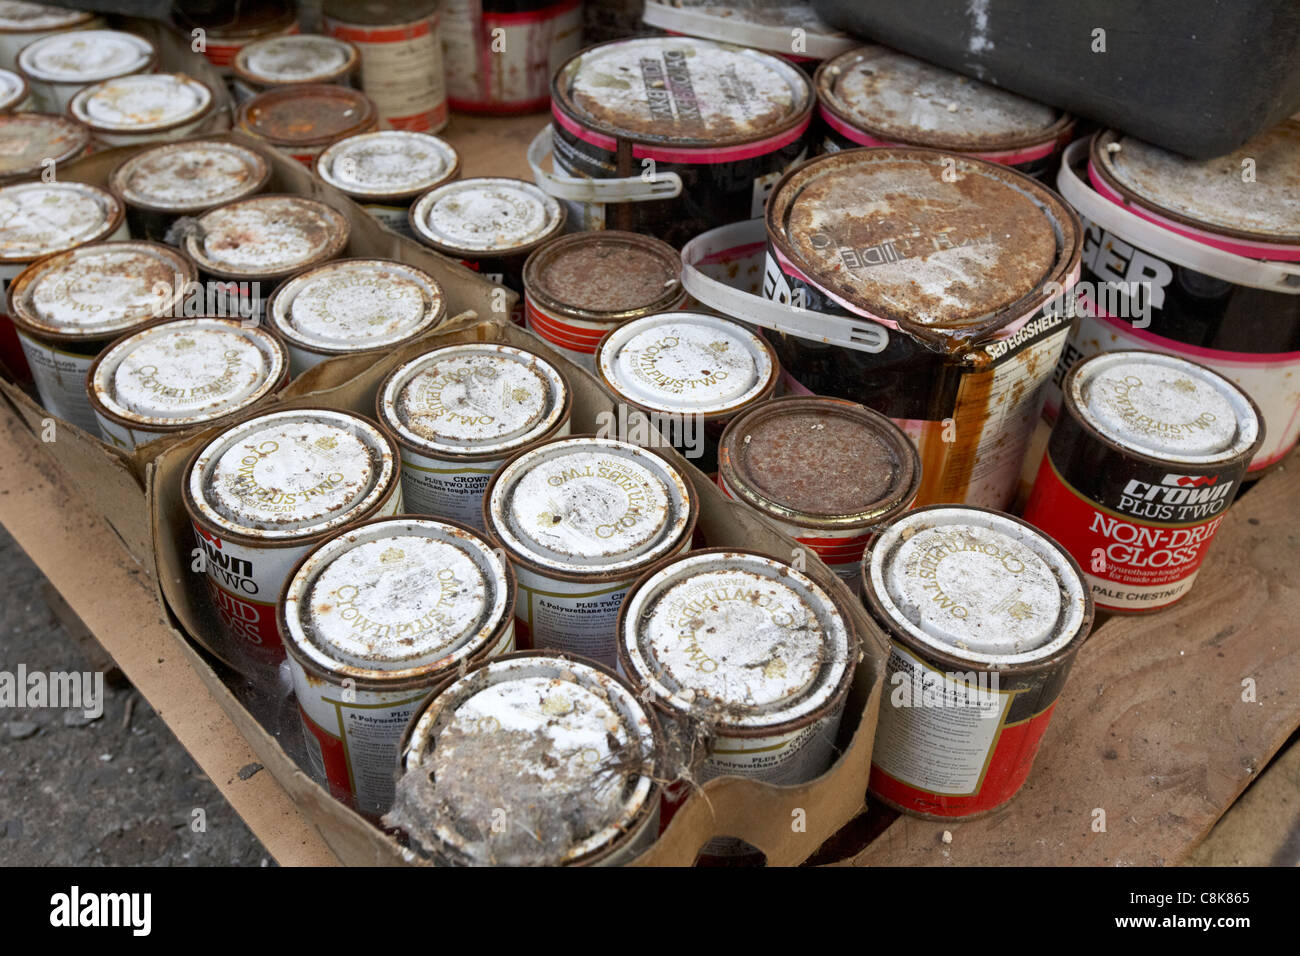 pile of old crown tins of paint rusting and covered in dirt in an old factory warehouse unit belfast northern ireland - Stock Image